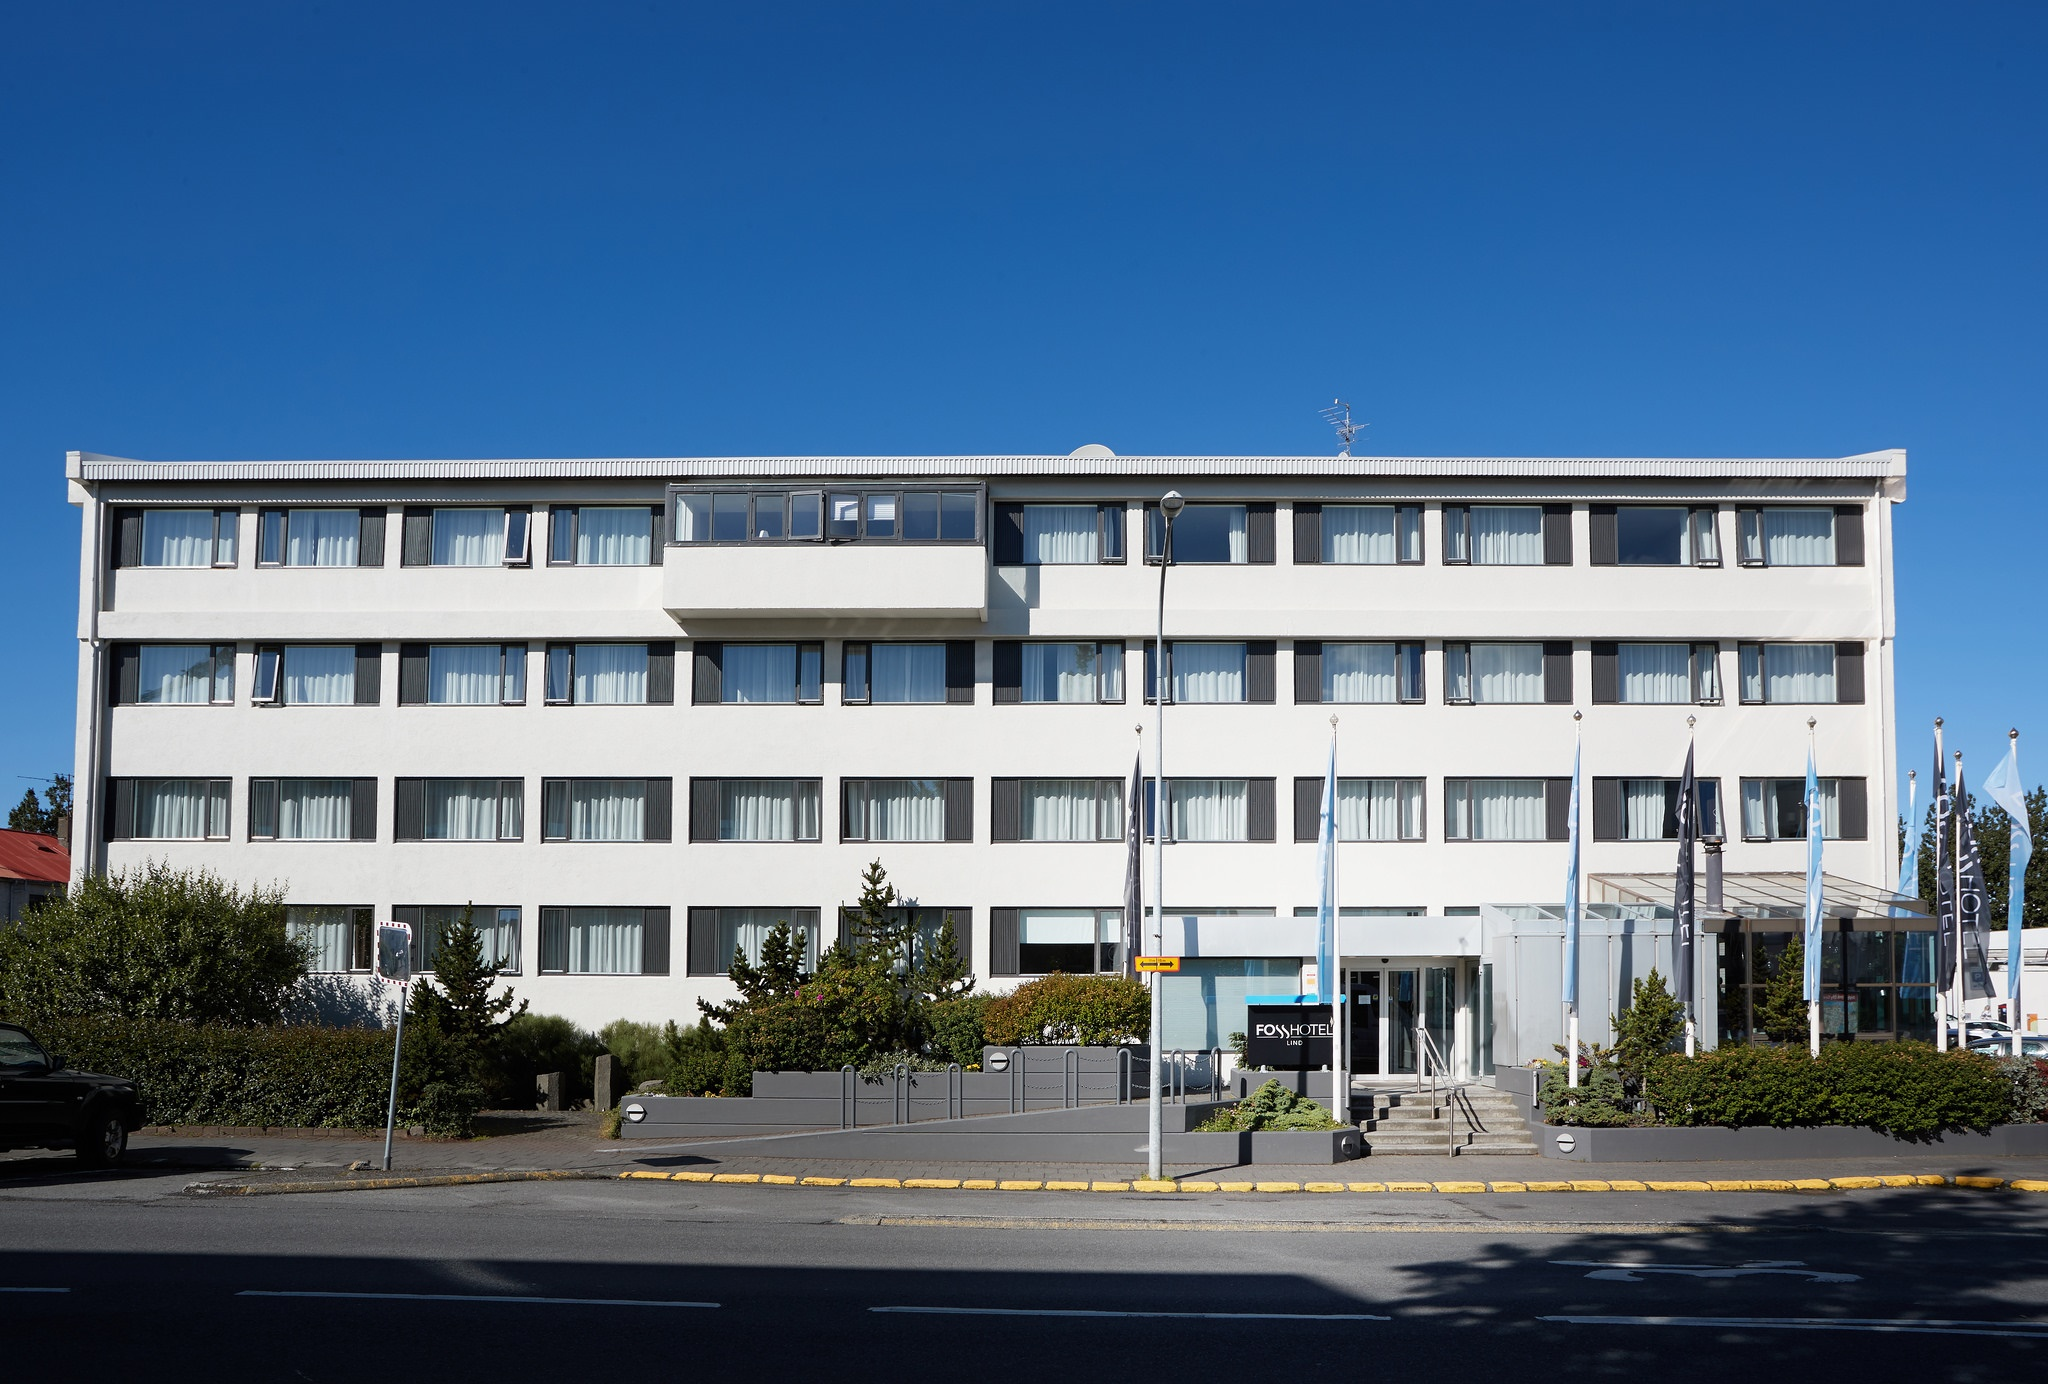 Stay at the Fosshotel Lind, Reykjavik with Sunway